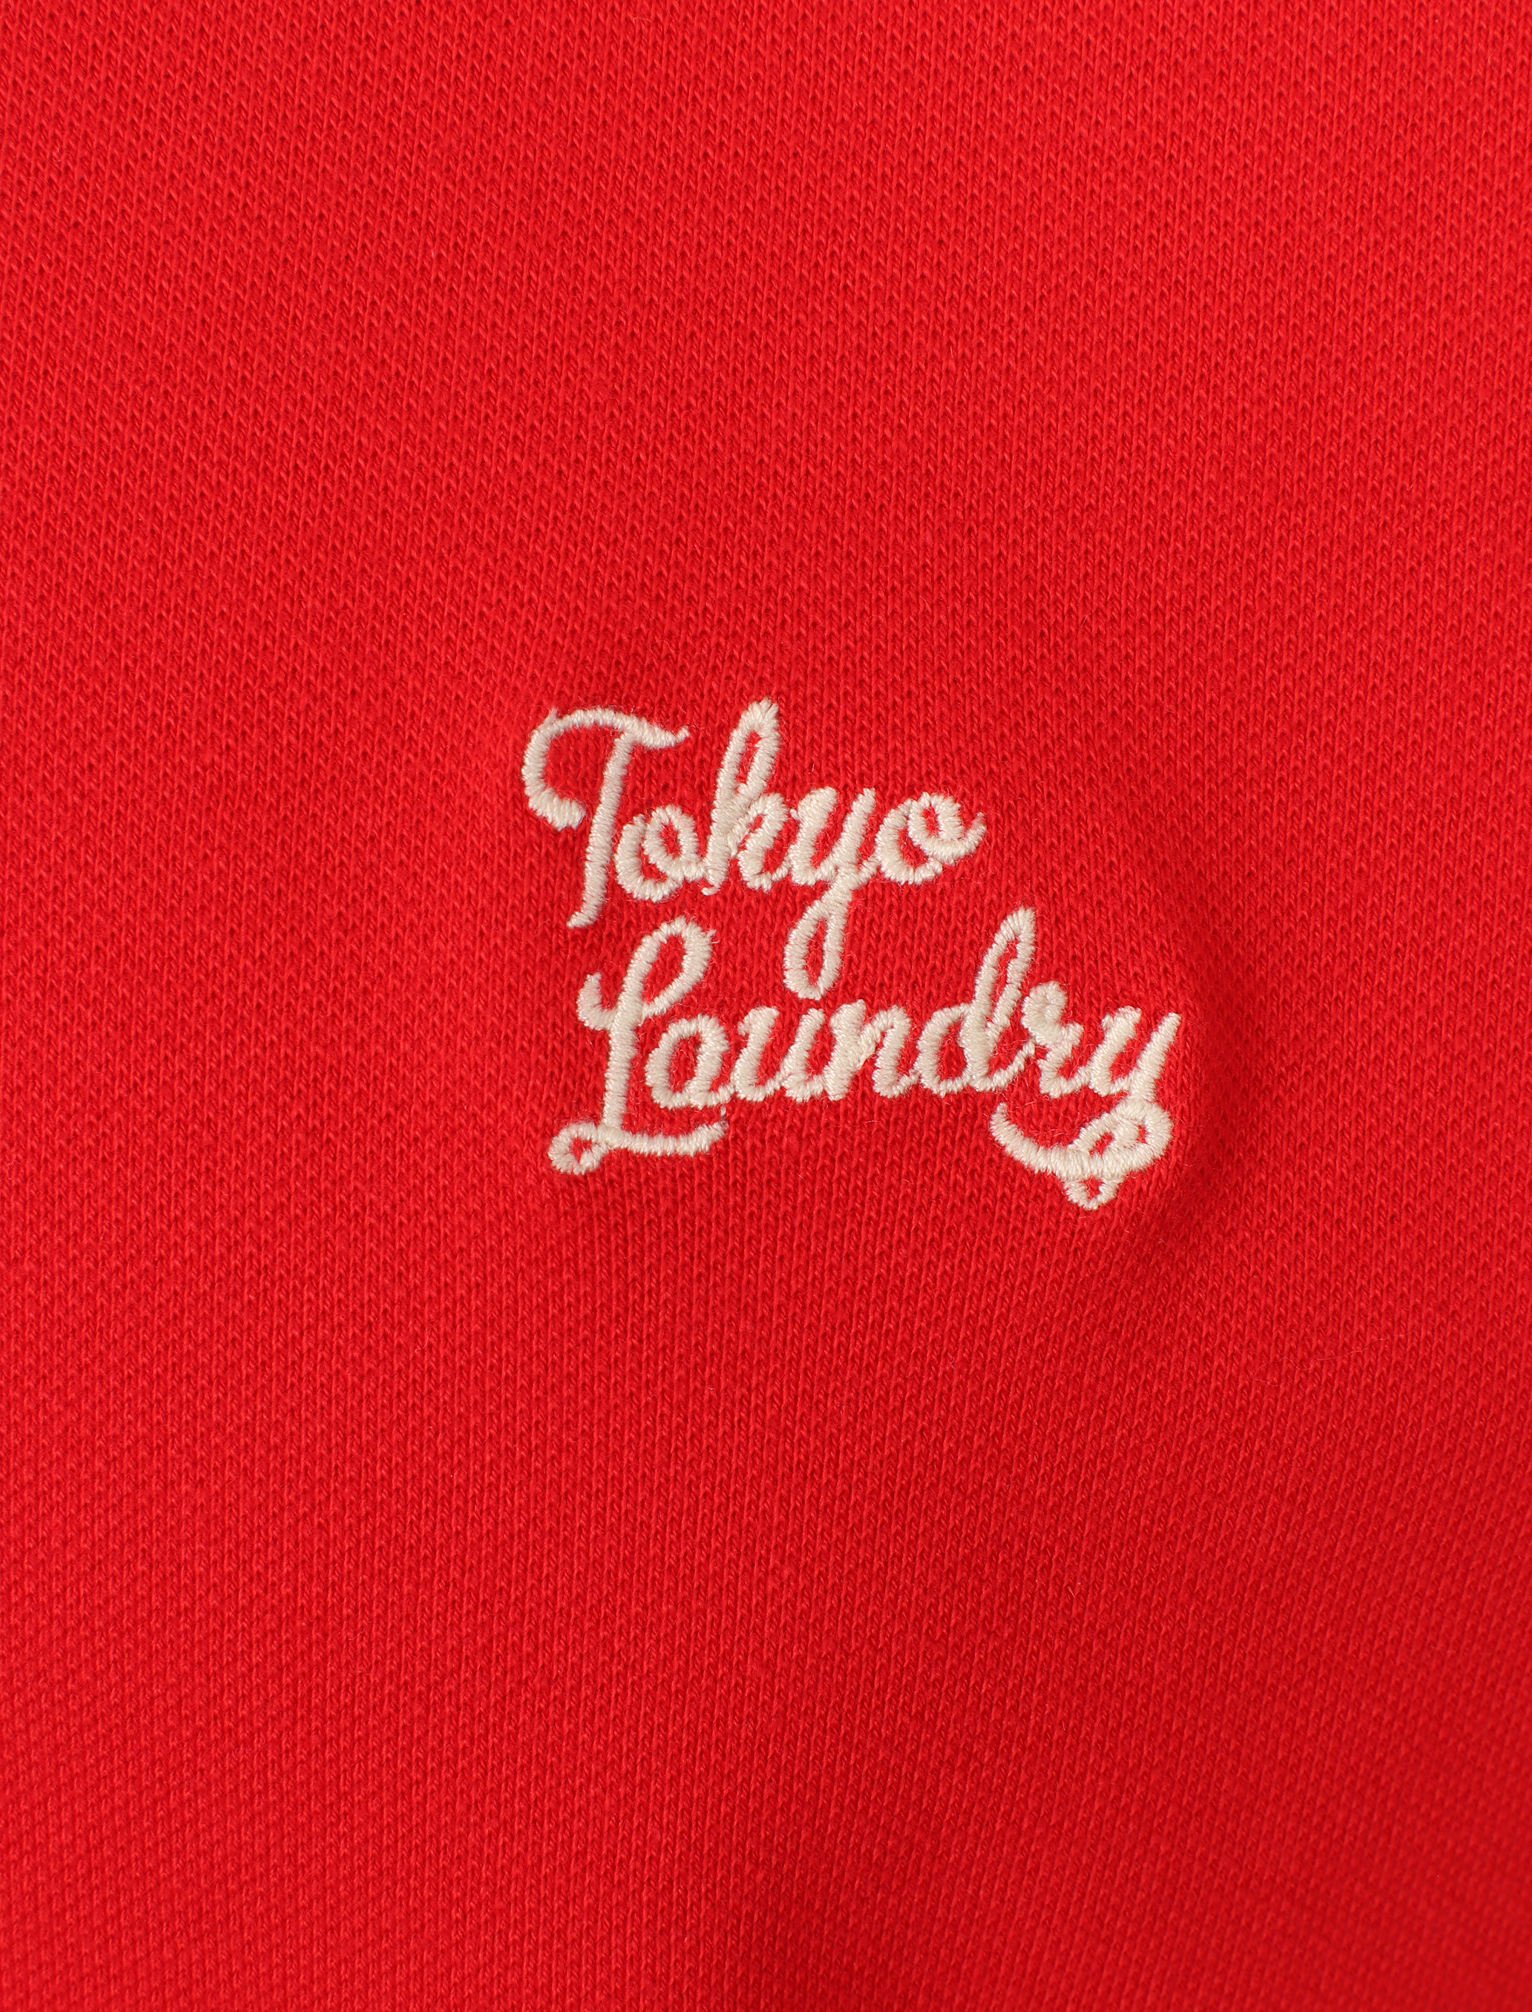 Mens-Tokyo-Laundry-Cotton-Classic-Casual-Short-Sleeve-Polo-Shirt-Top-Size-S-XXL thumbnail 9